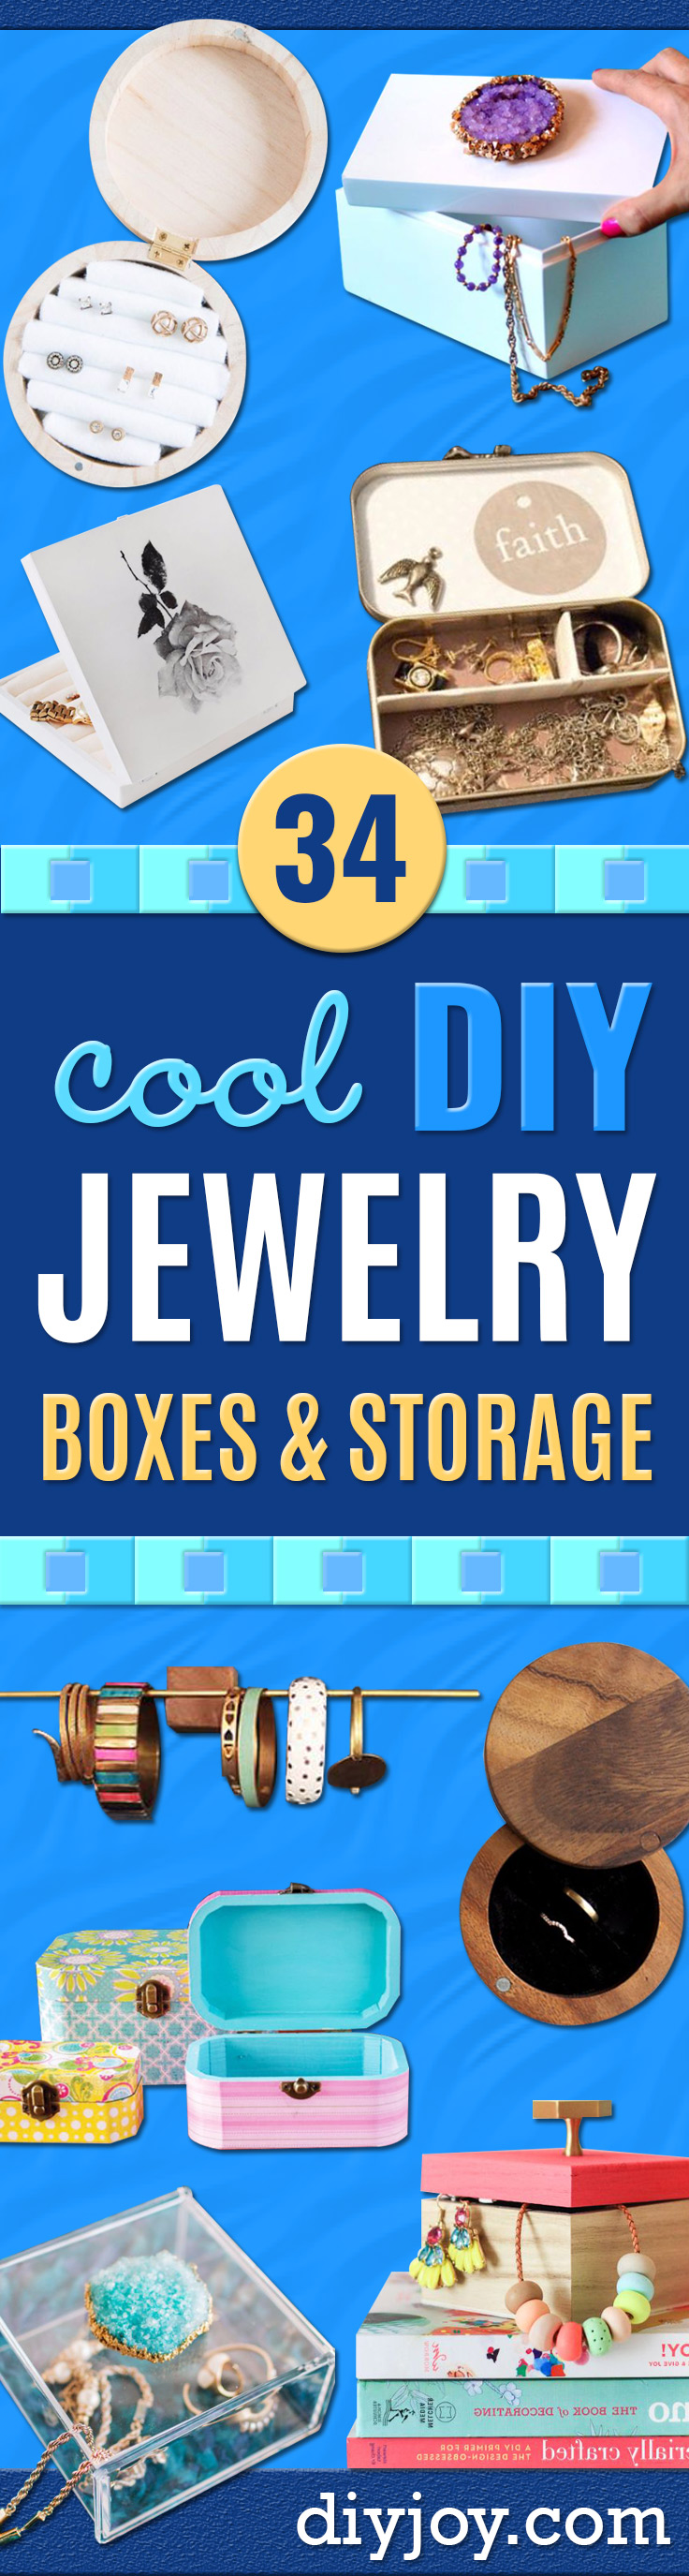 DIY Jewelry Ideas - How To Make the Coolest Jewelry Ideas For Kids and Teens - Homemade Wooden and Plastic Jewelry Box Plans - Easy Cardboard Gift Ideas - Cheap Wall Makeover and Organizer Projects With Drawers Men http://diyjoy.com/diy-jewelry-boxes-storage